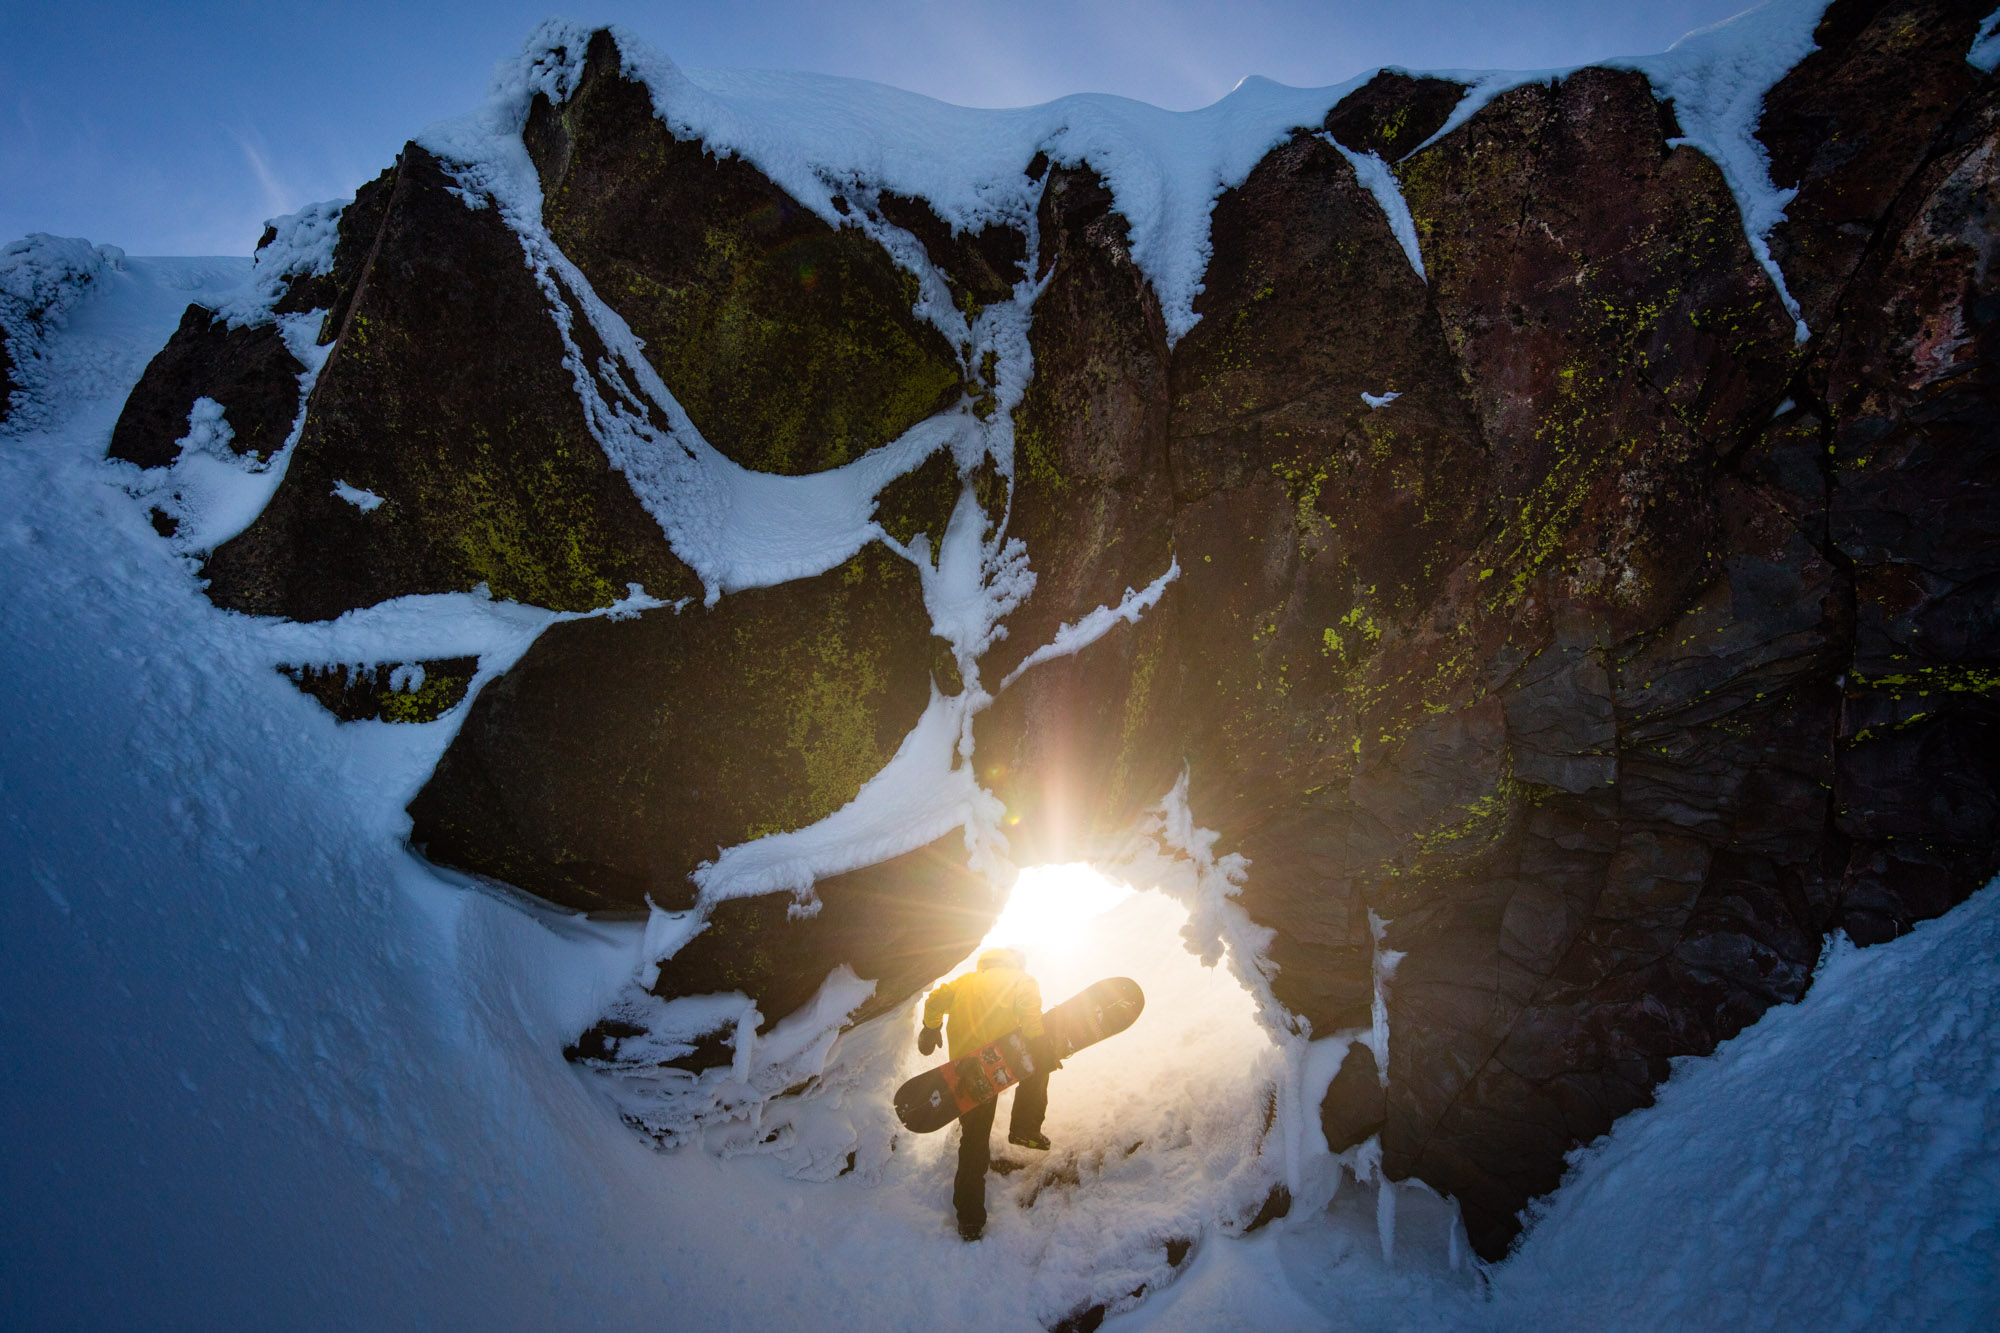 Snowboarder Josh Dirksen | Winter Sports Photography